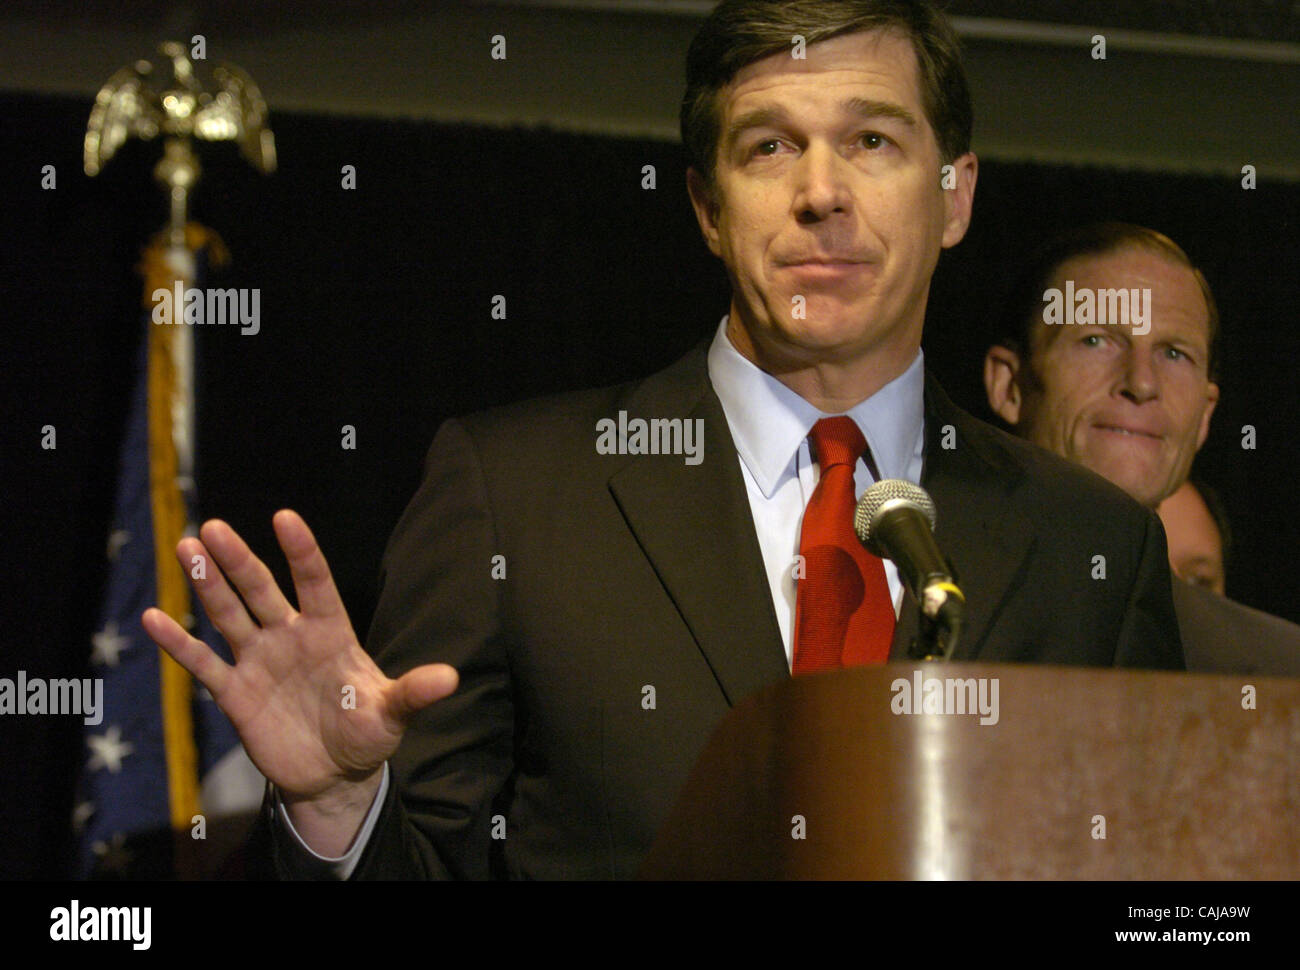 North Carolina Attorney General Roy Cooper gestures while speaking at the press conference. In a joint effort to - Stock Image